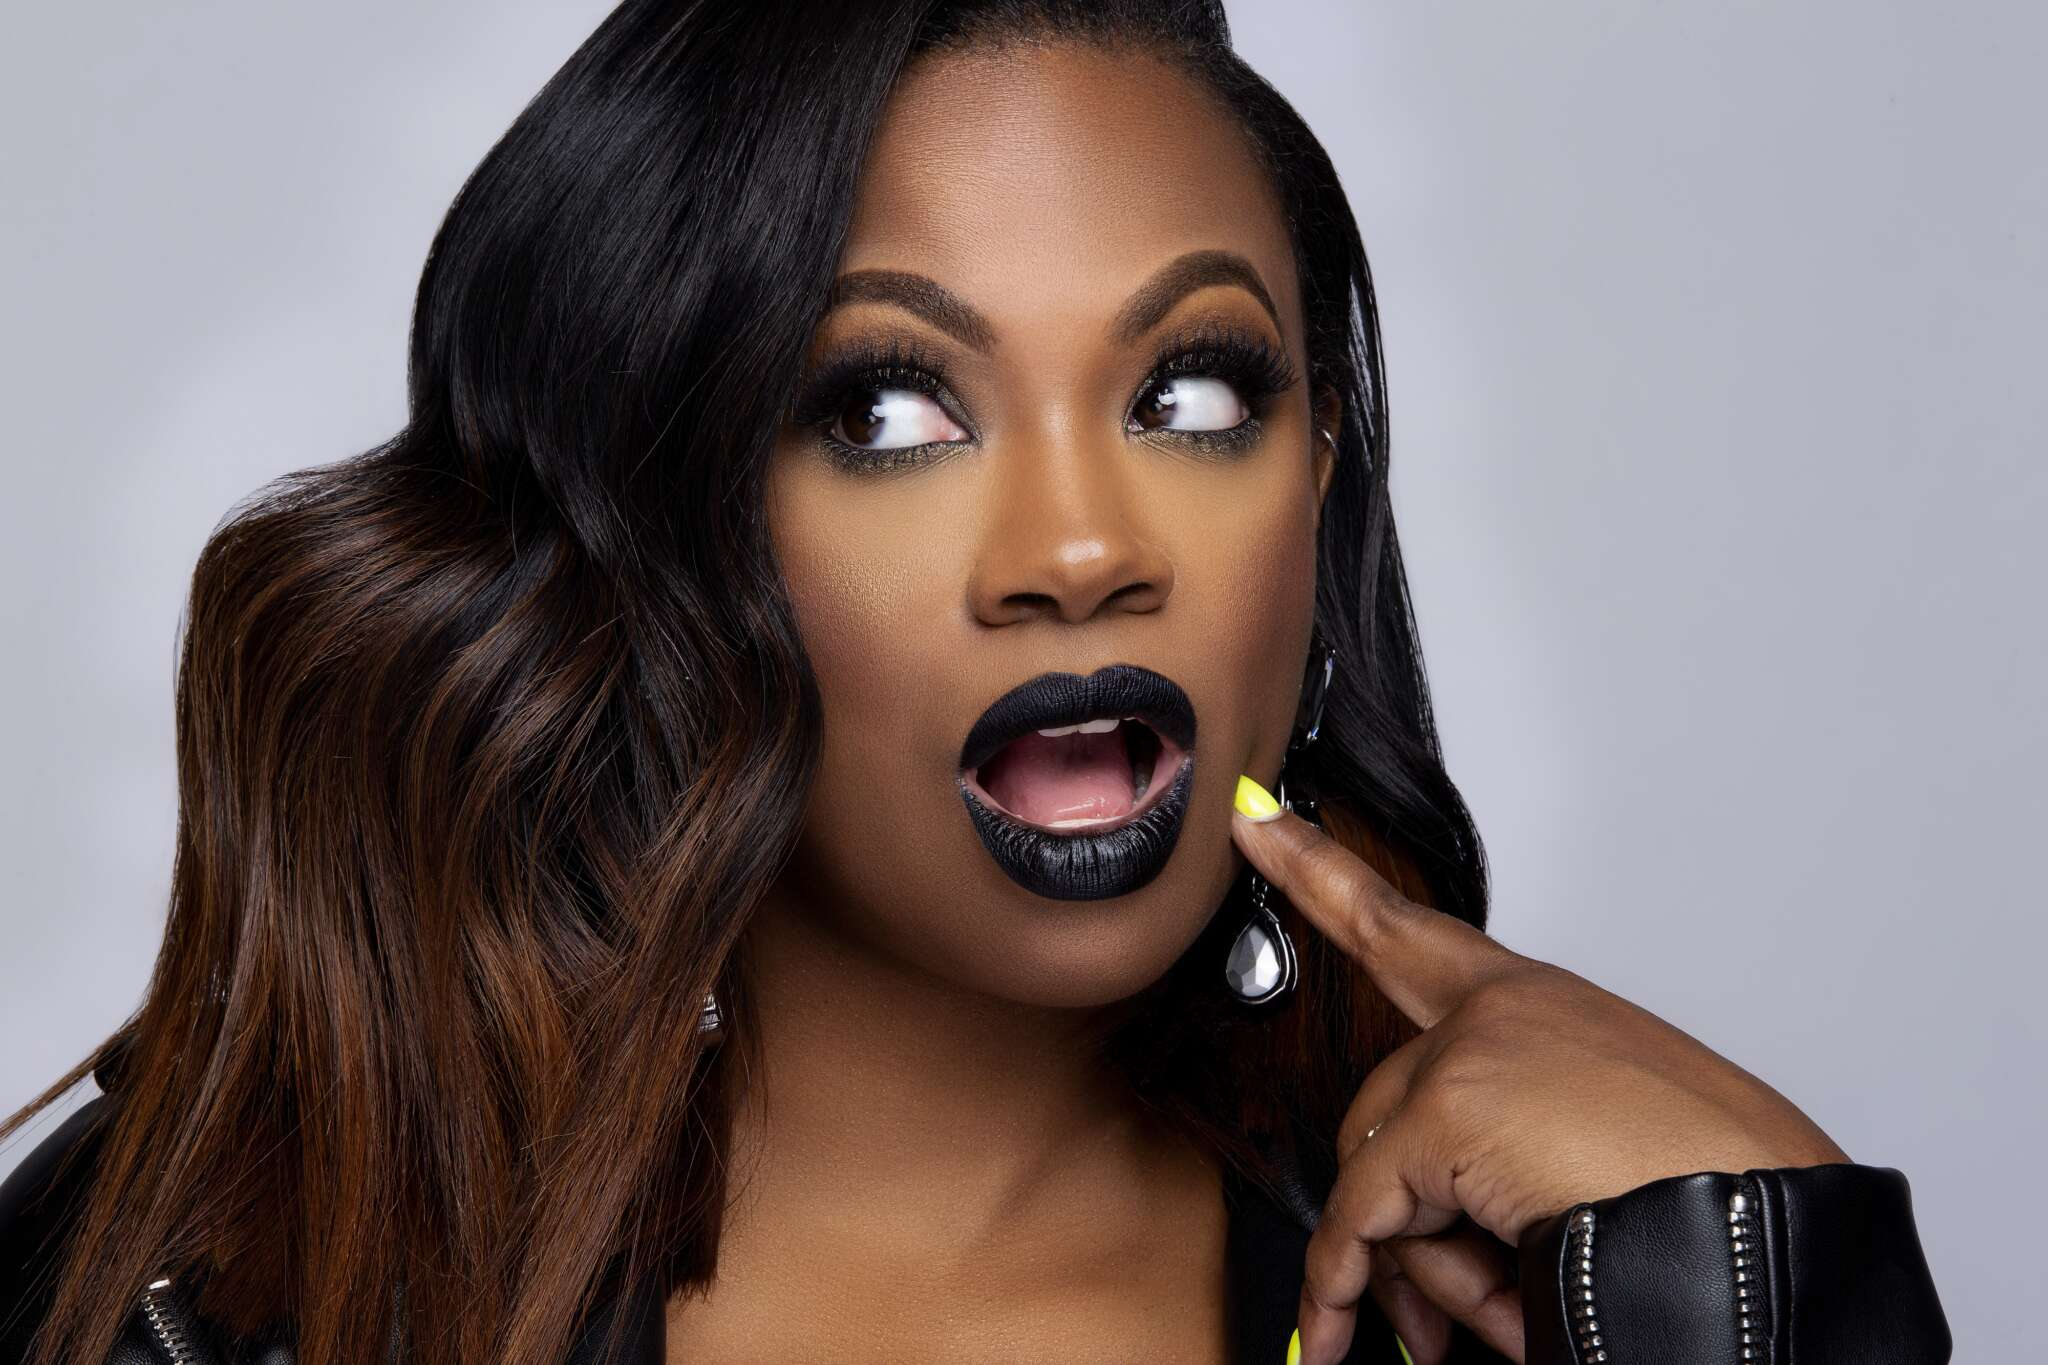 kandi-burruss-looks-delicious-in-this-all-black-outfit-see-her-photo